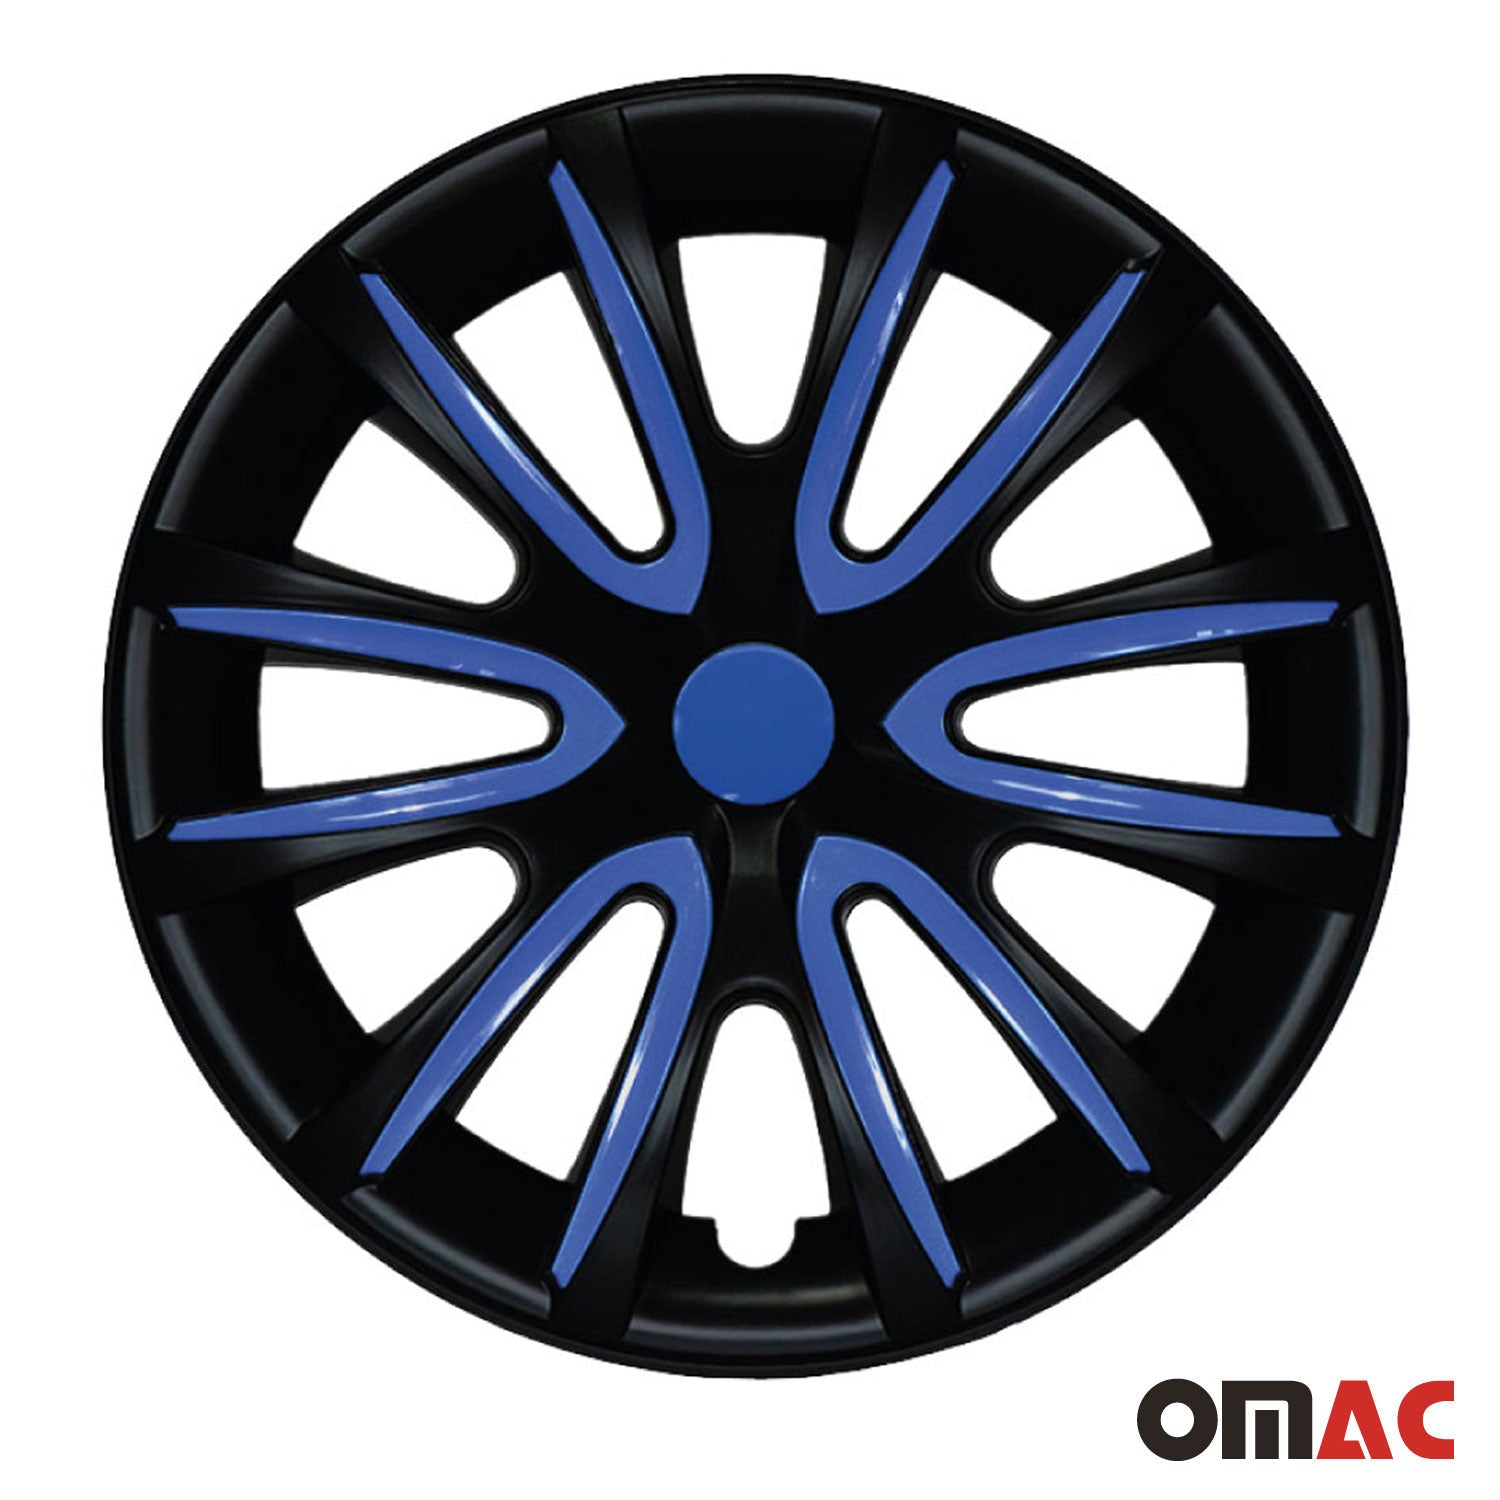 16 Inch Hubcaps Wheel Rim Cover Matt Black & Dark Blue for Chevrolet Impala Set